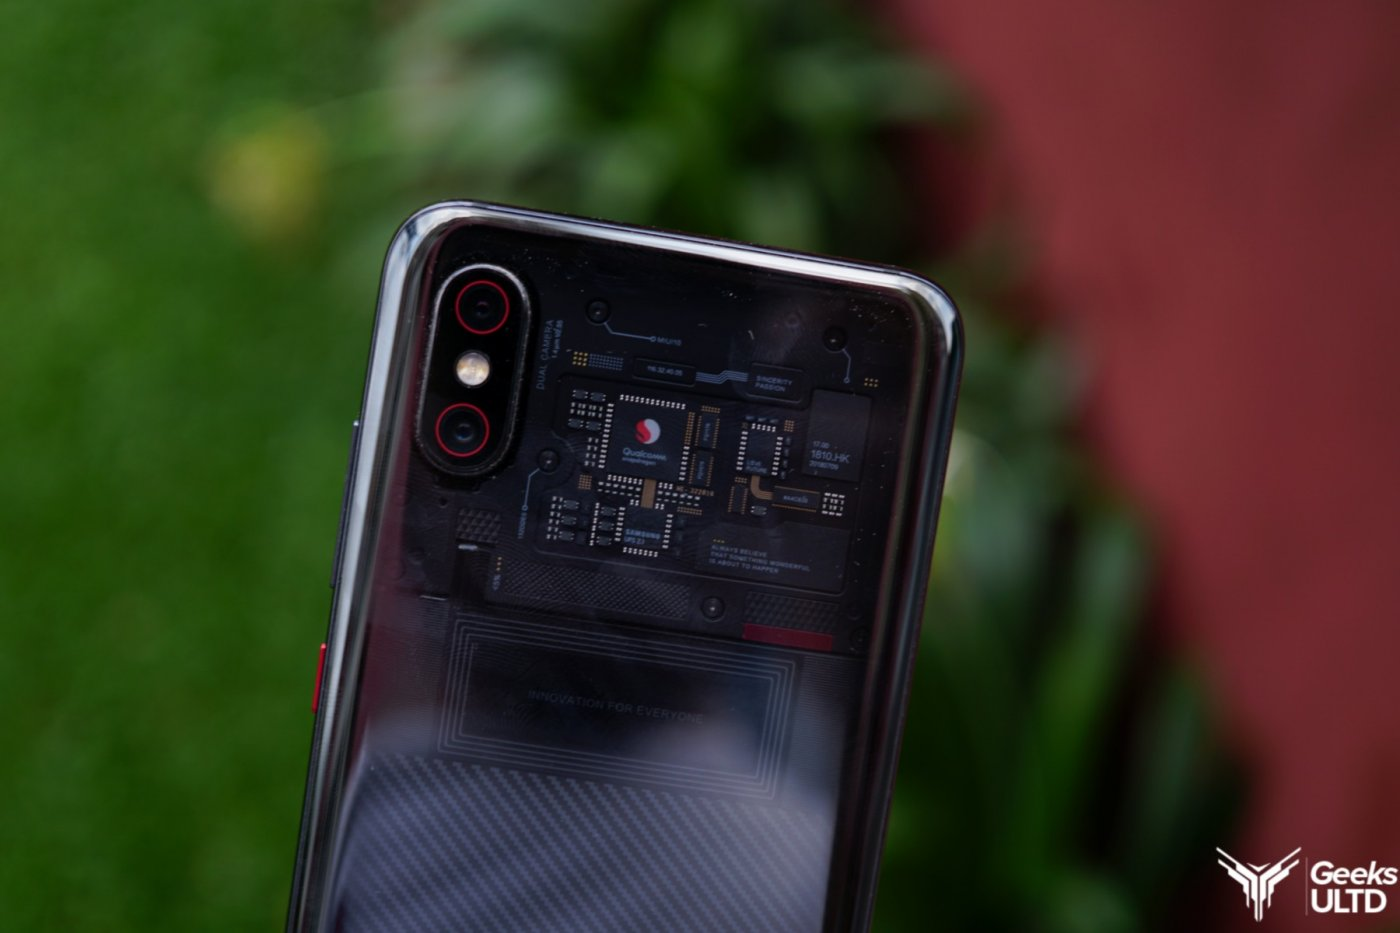 Xiaomi Mi 8 Pro Review - Snapdragon 845-Powered Flagship Still A Charm In 2019? 61